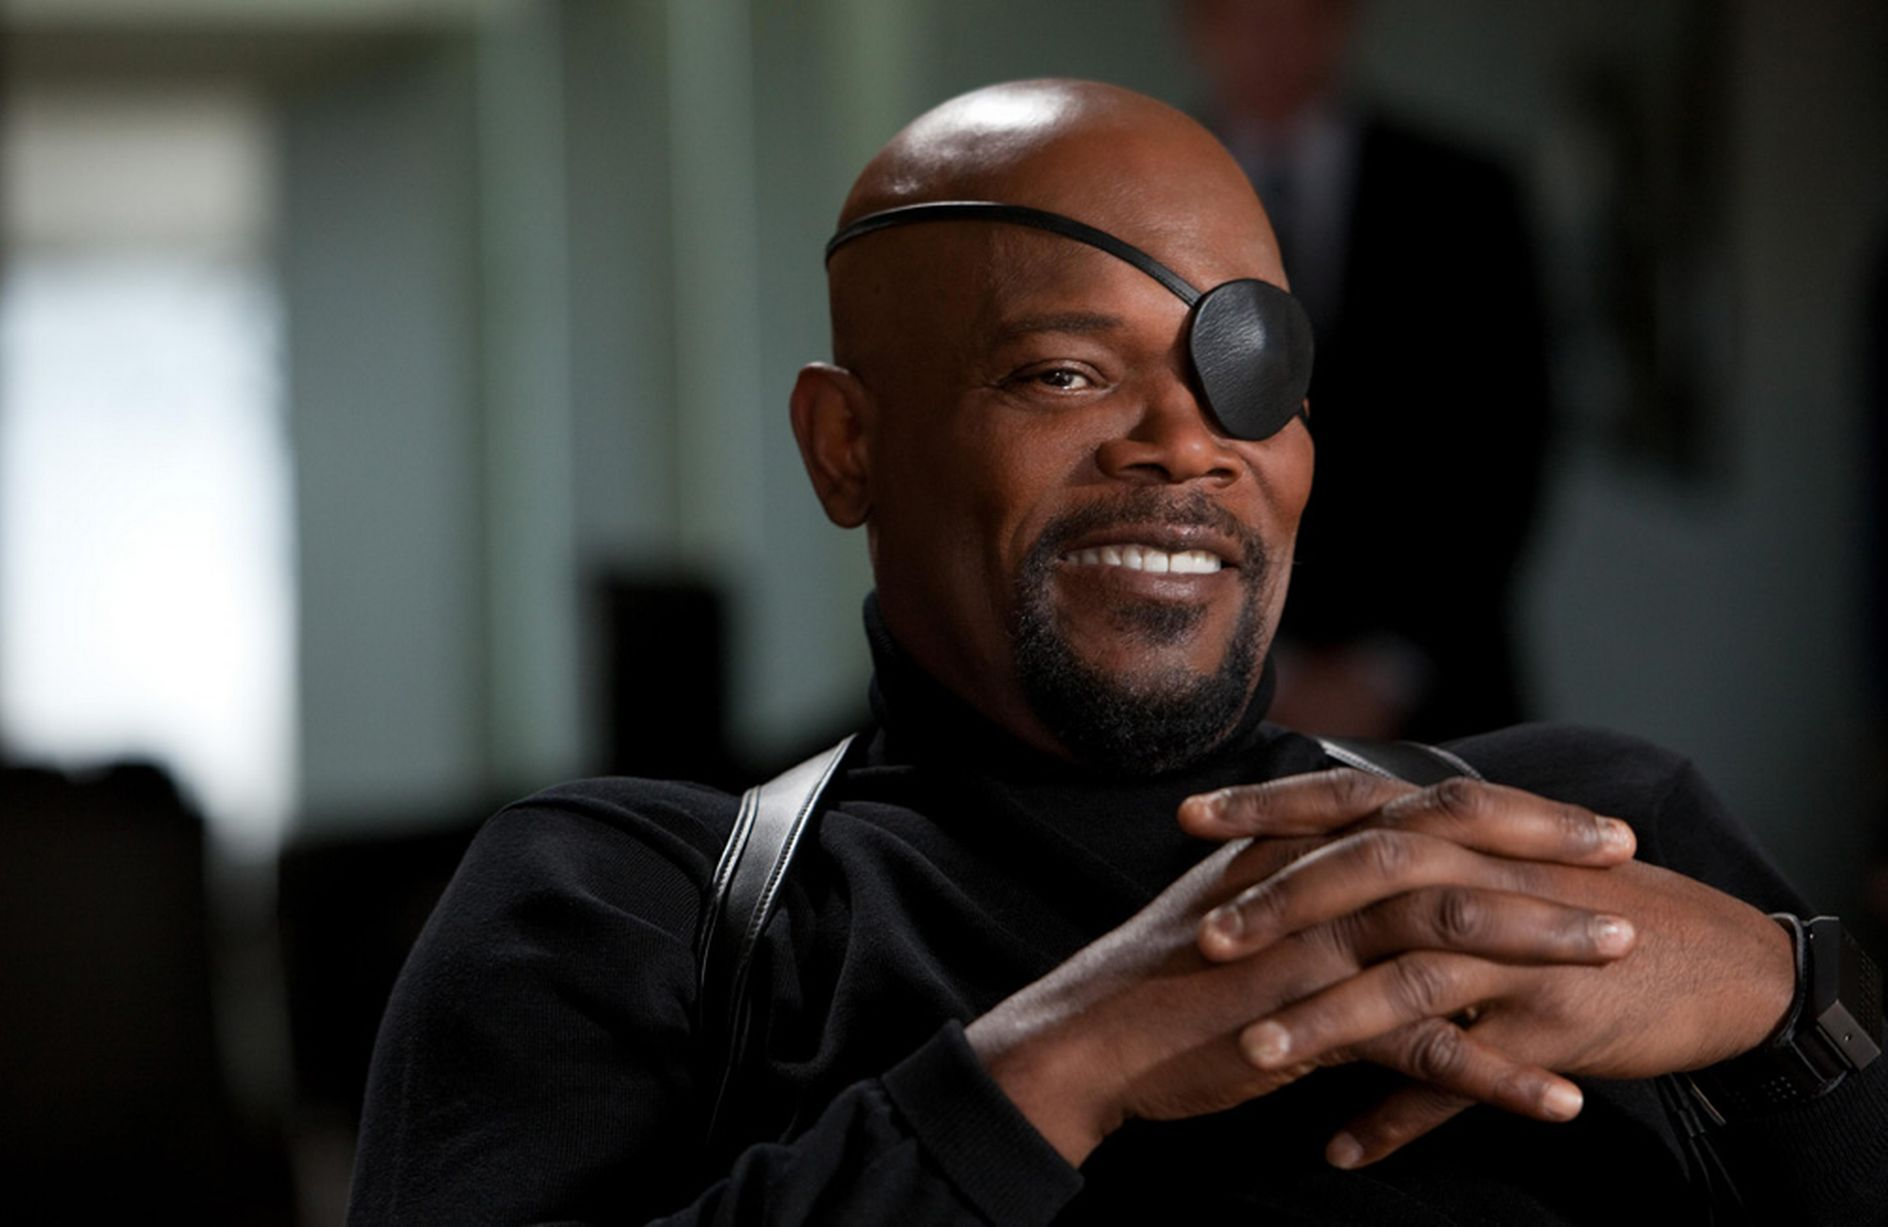 Samuel-L-Jackson-as-Nick-Fury